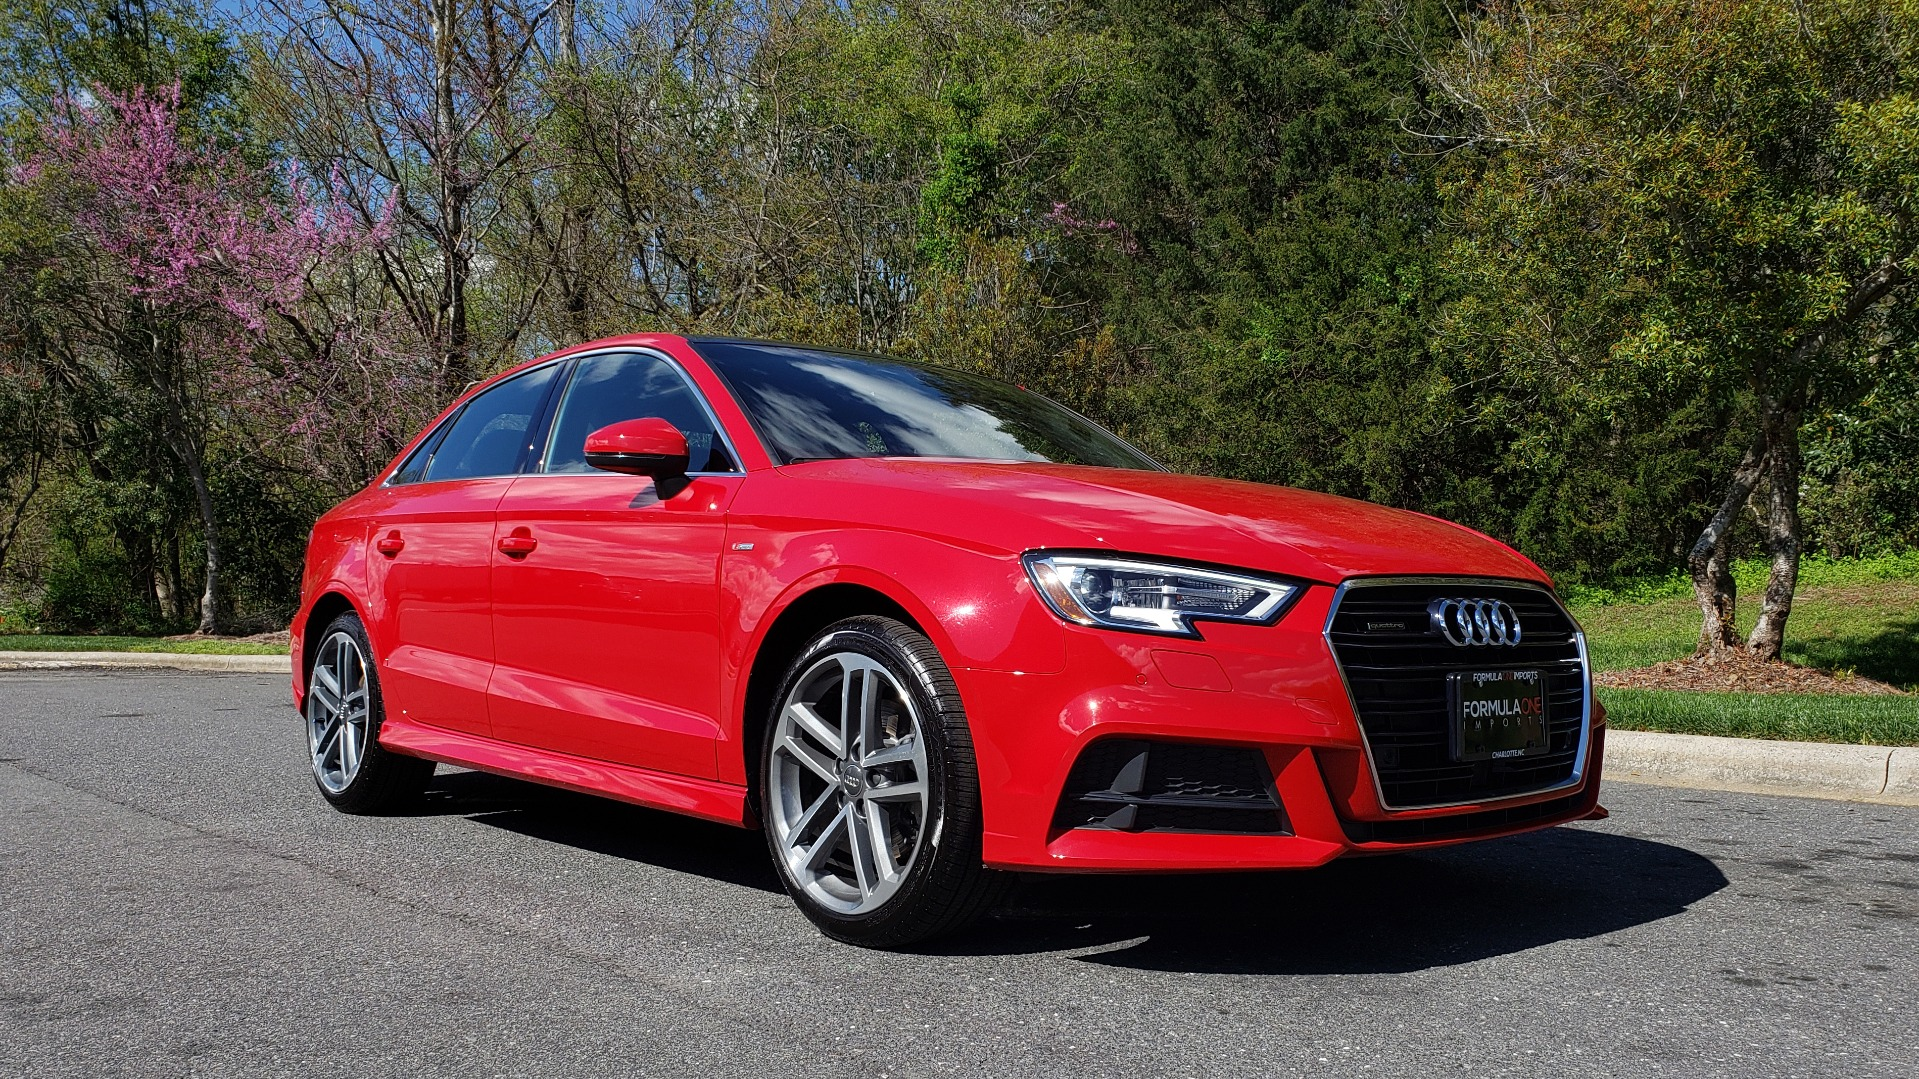 Used 2017 Audi A3 SEDAN PREMIUM PLUS / S-TRONIC / NAV / TECH / SUNROOF / REARVIEW for sale Sold at Formula Imports in Charlotte NC 28227 4